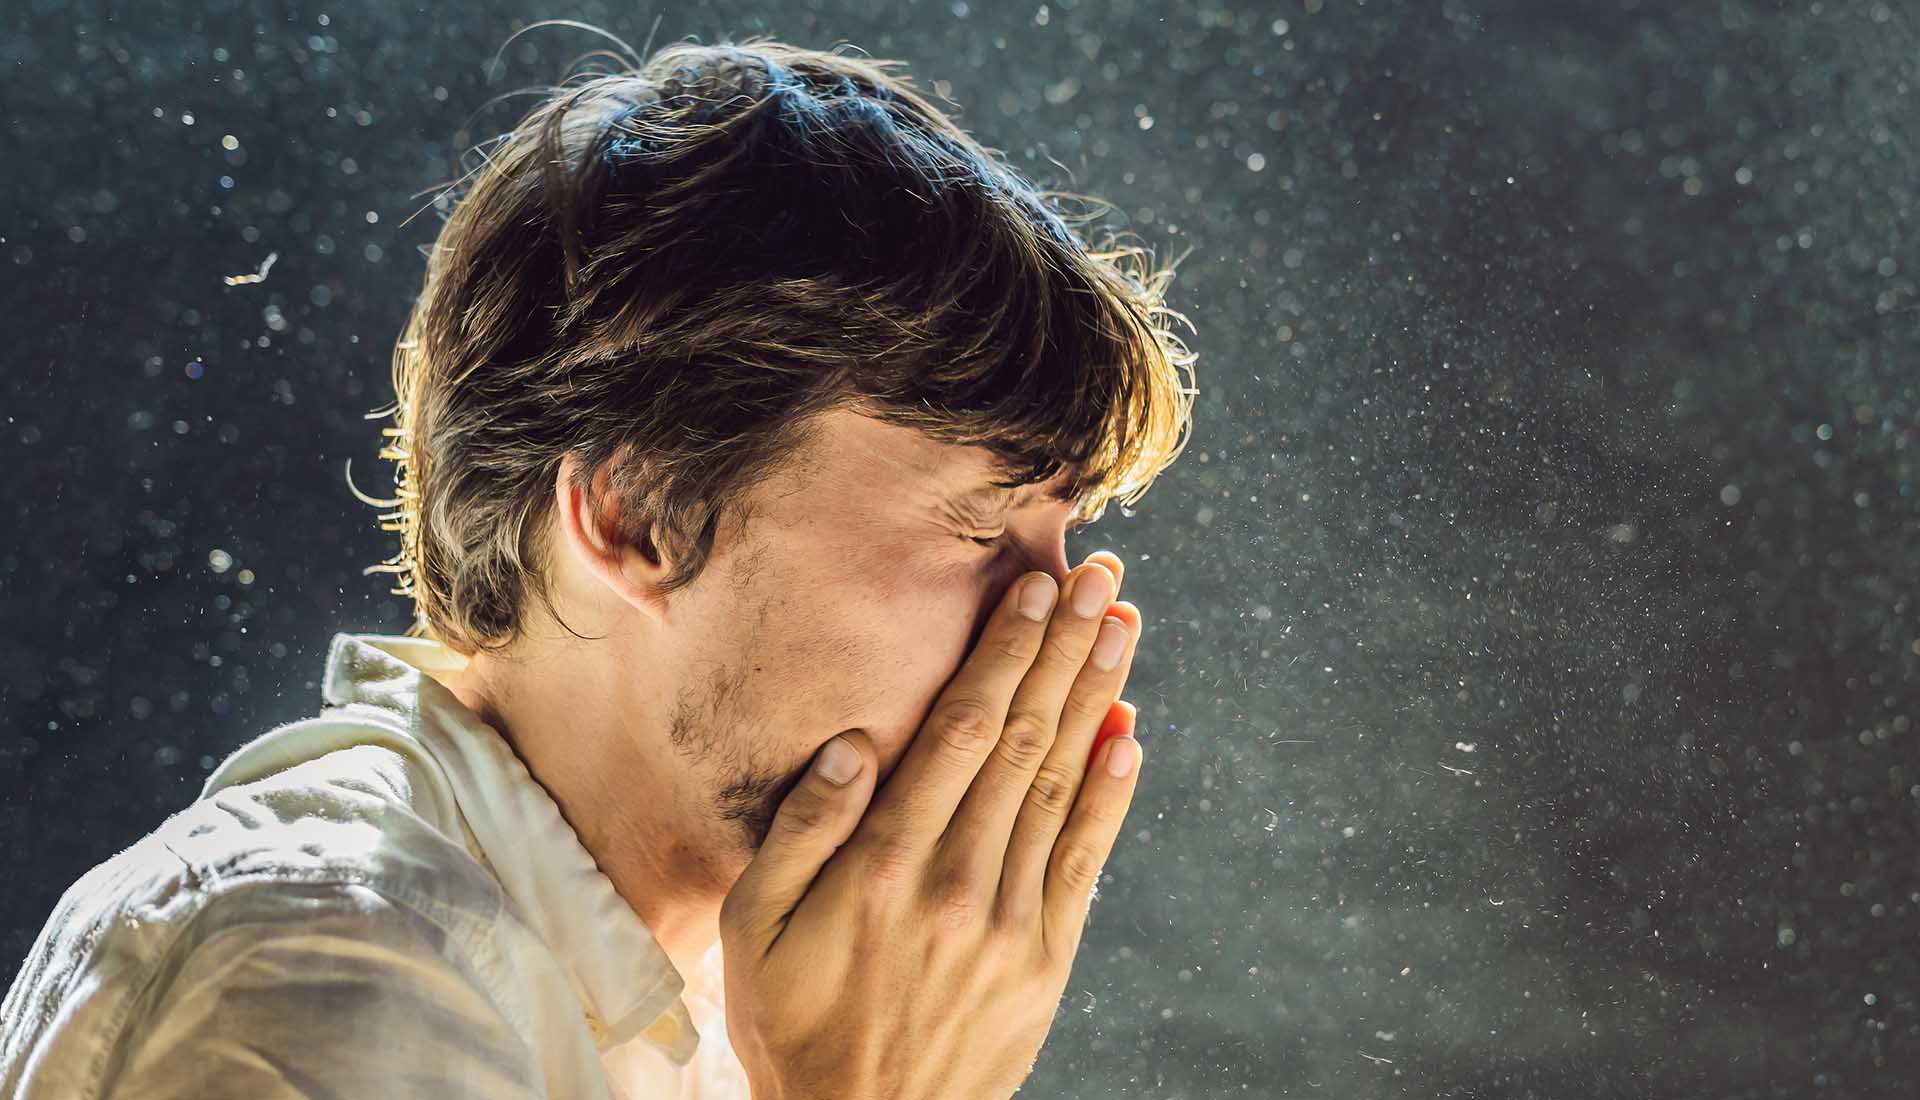 man with closed eyes covering his nose with hands while sneezing because of dust